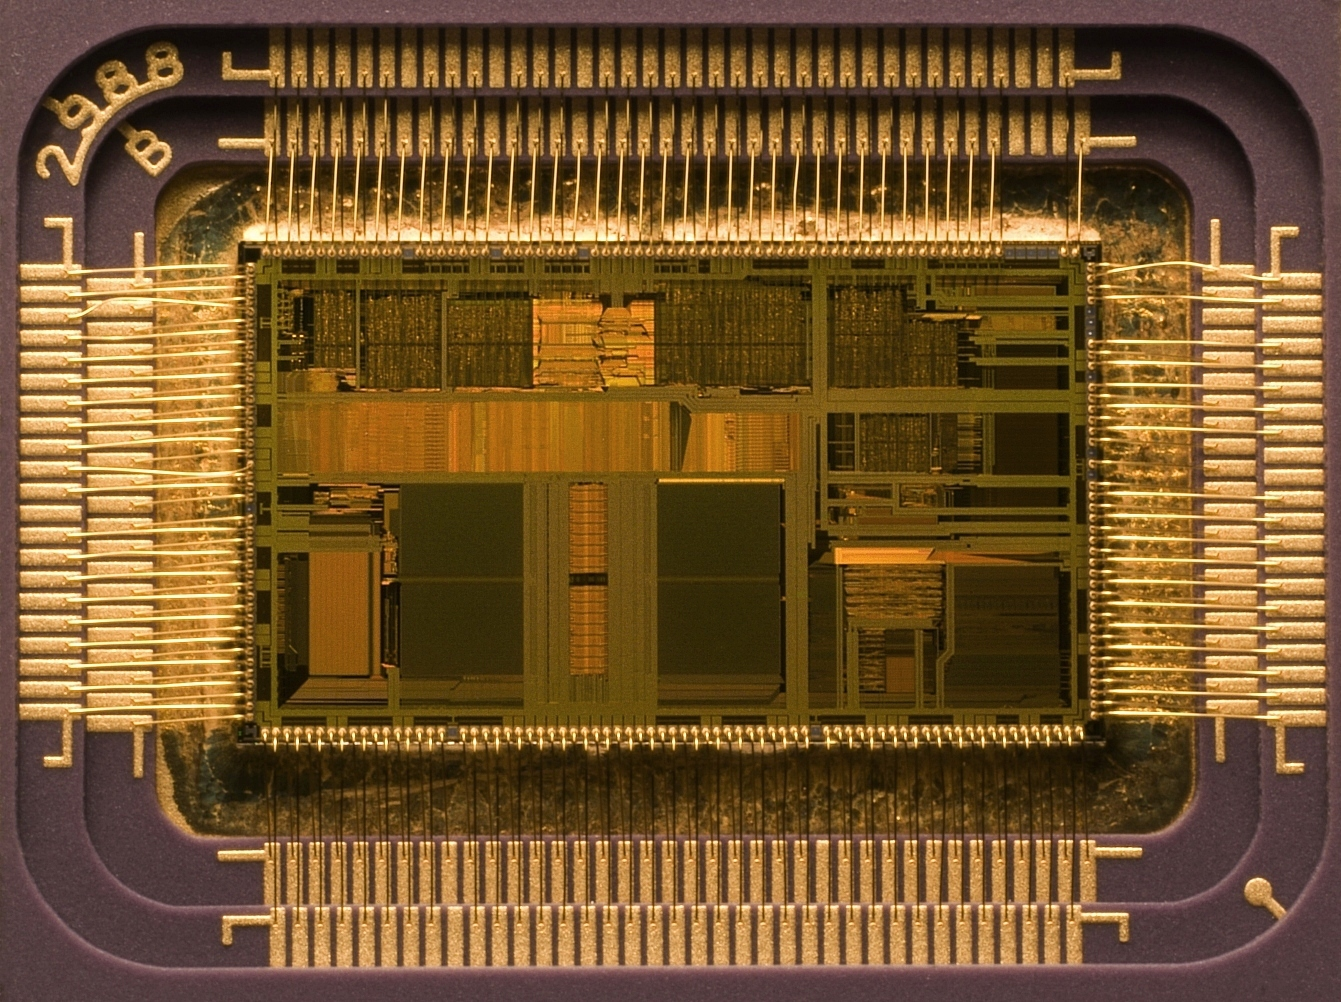 Digital Electronics Wikipedia Integrated Circuits View Ic Electrical Component From Hangzhou Computer Designedit